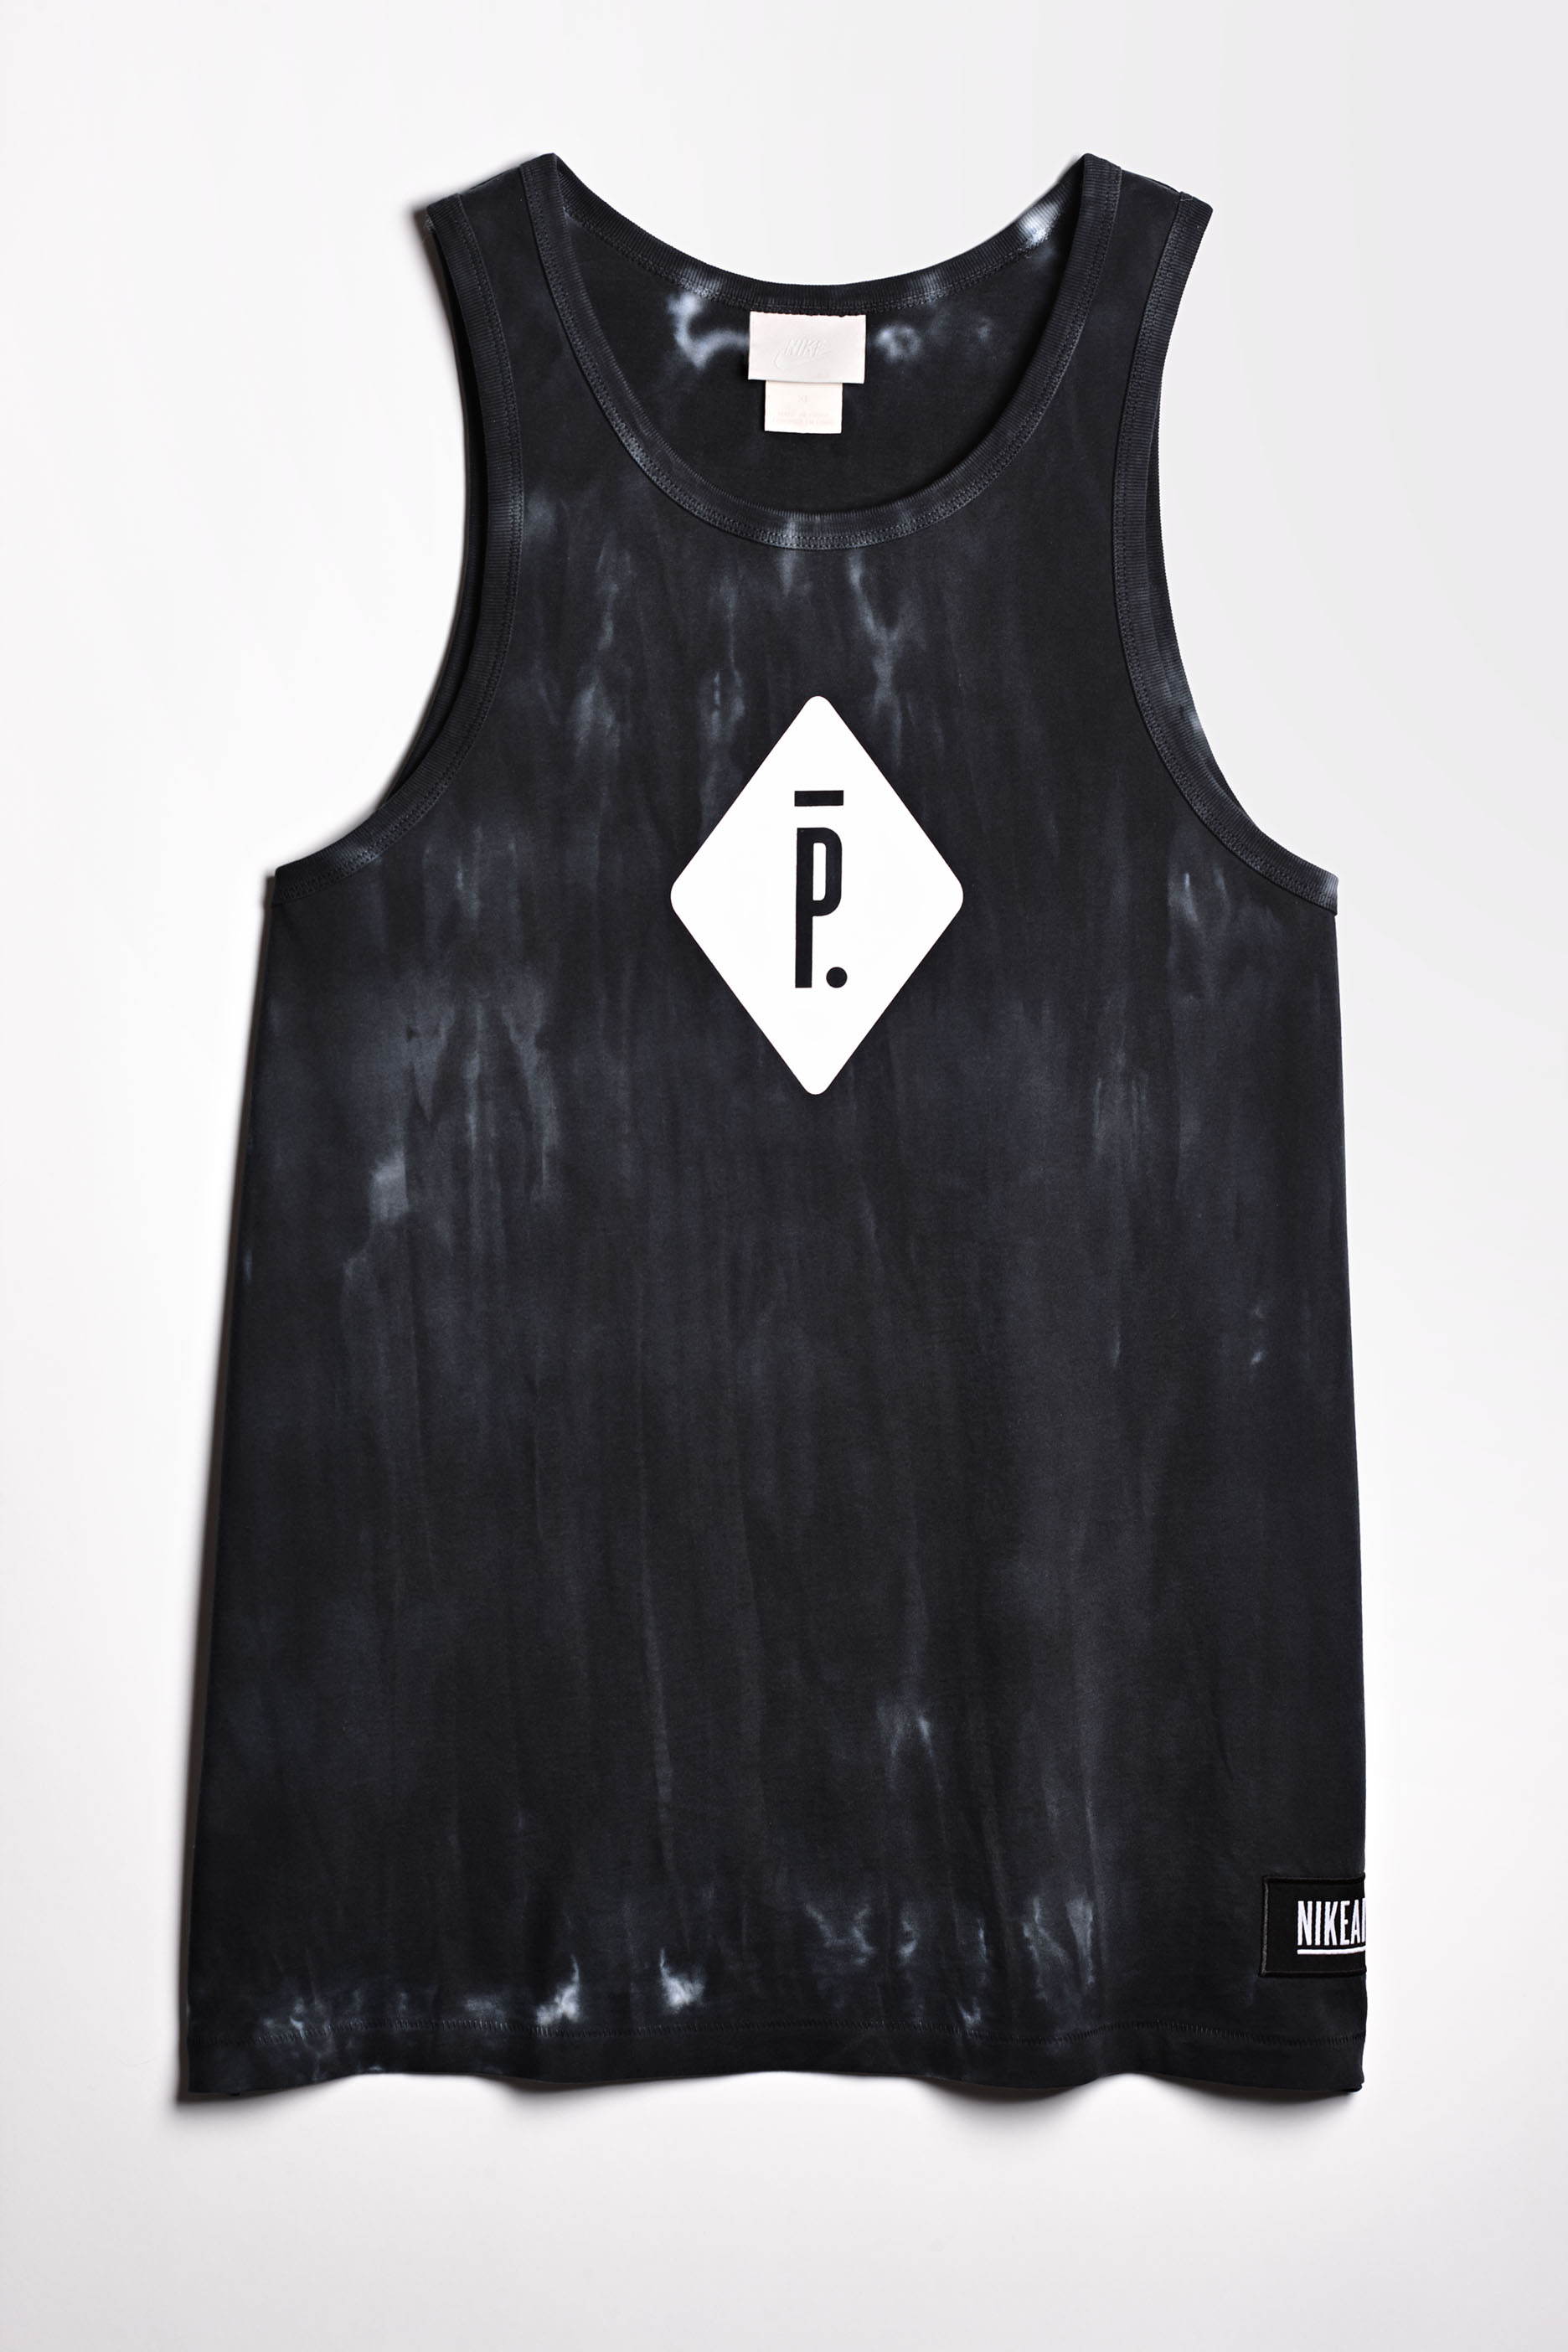 1397590319_nike_pigalle_tank_blk